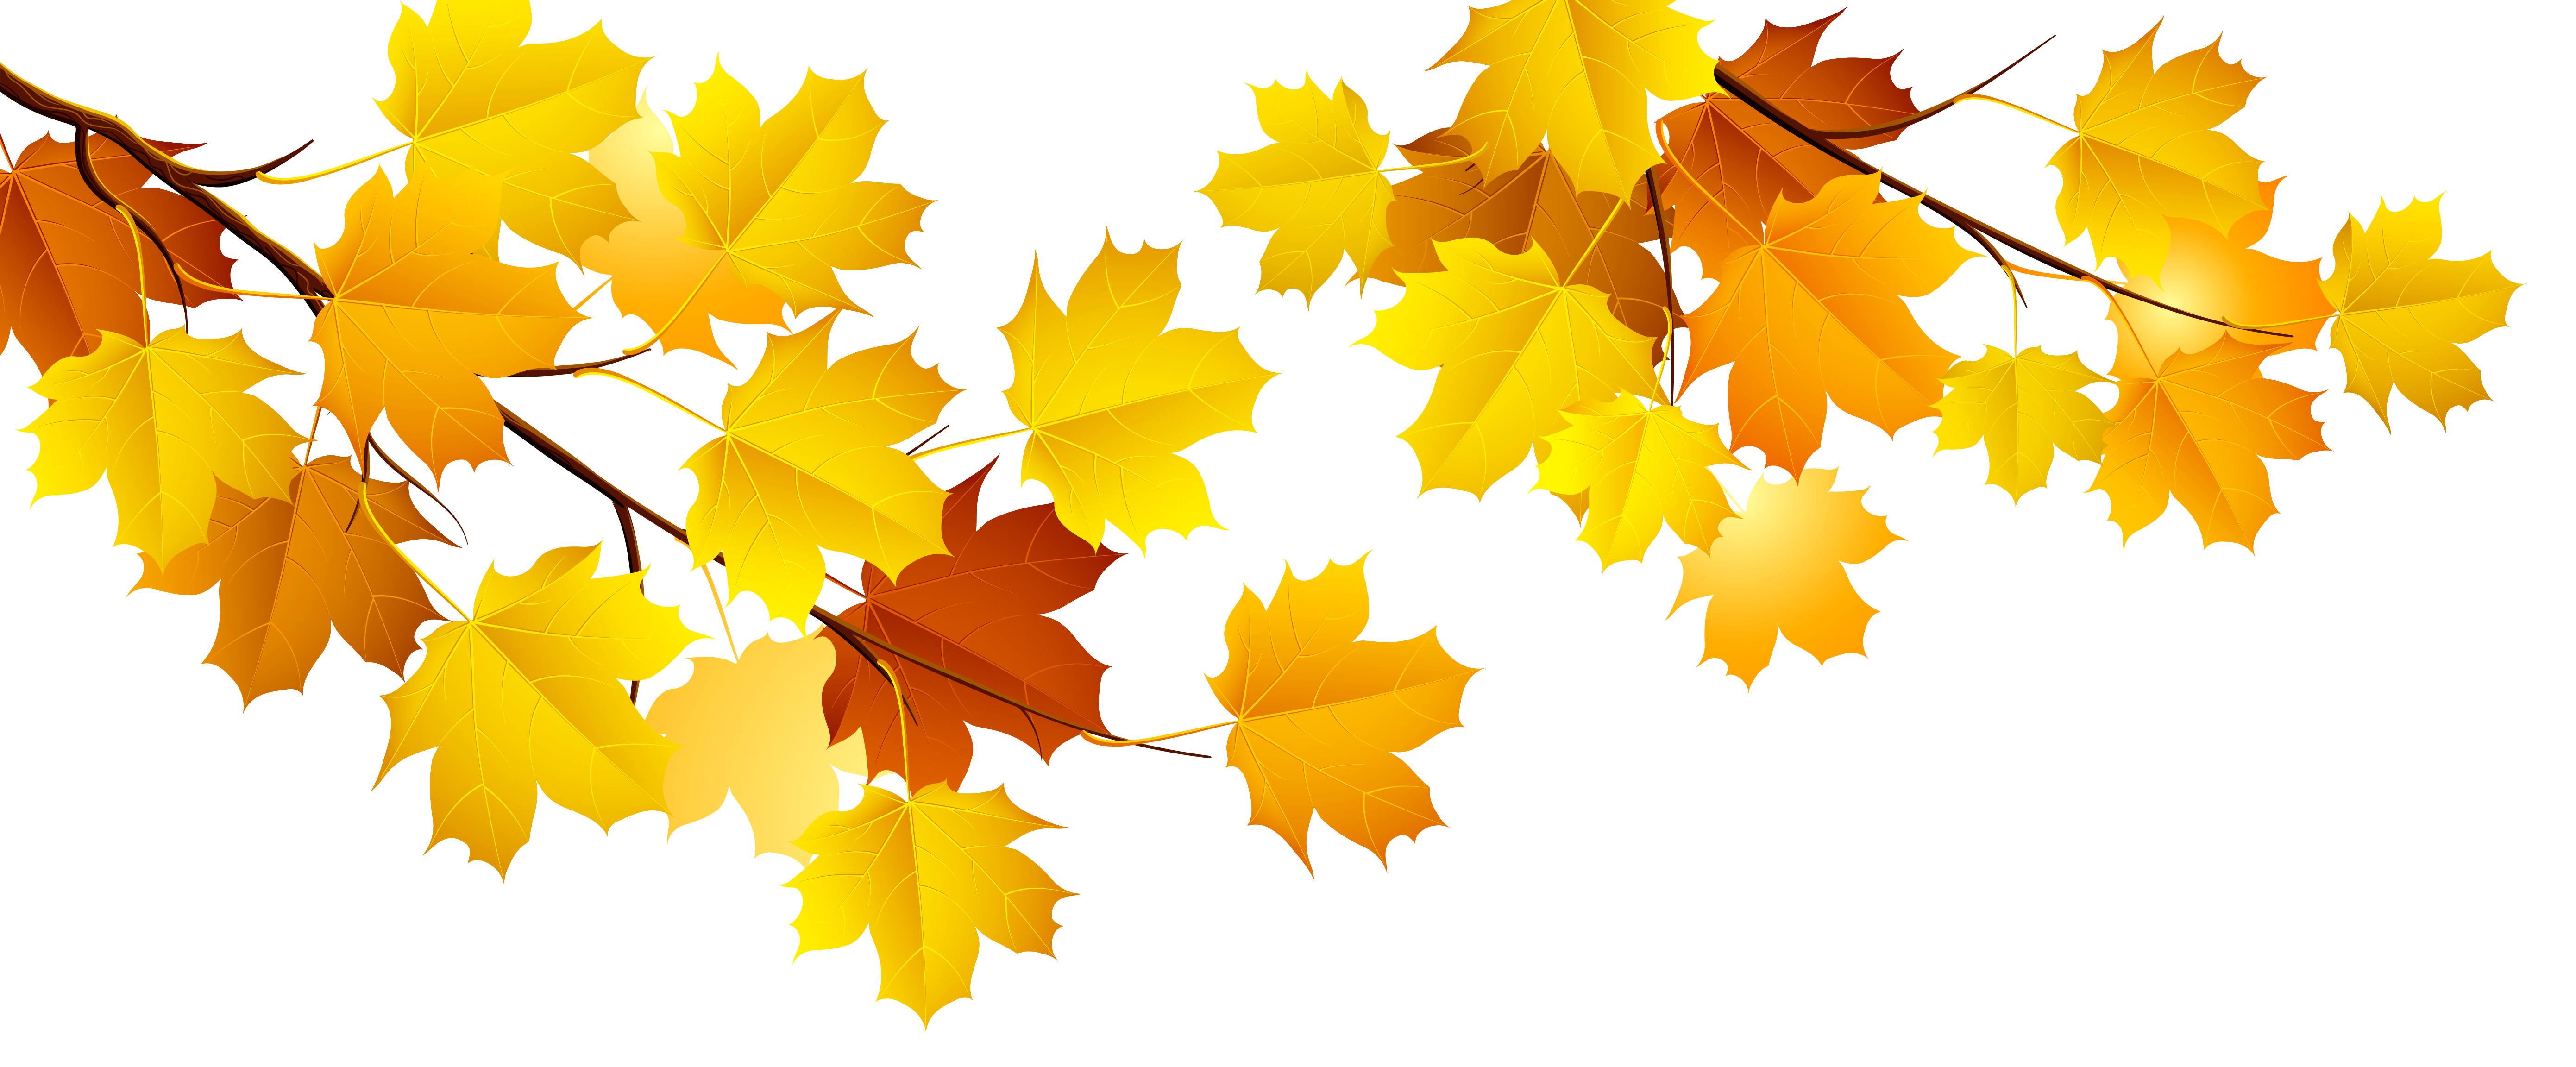 Autumn png gallery yopriceville. Fall tree branch clipart